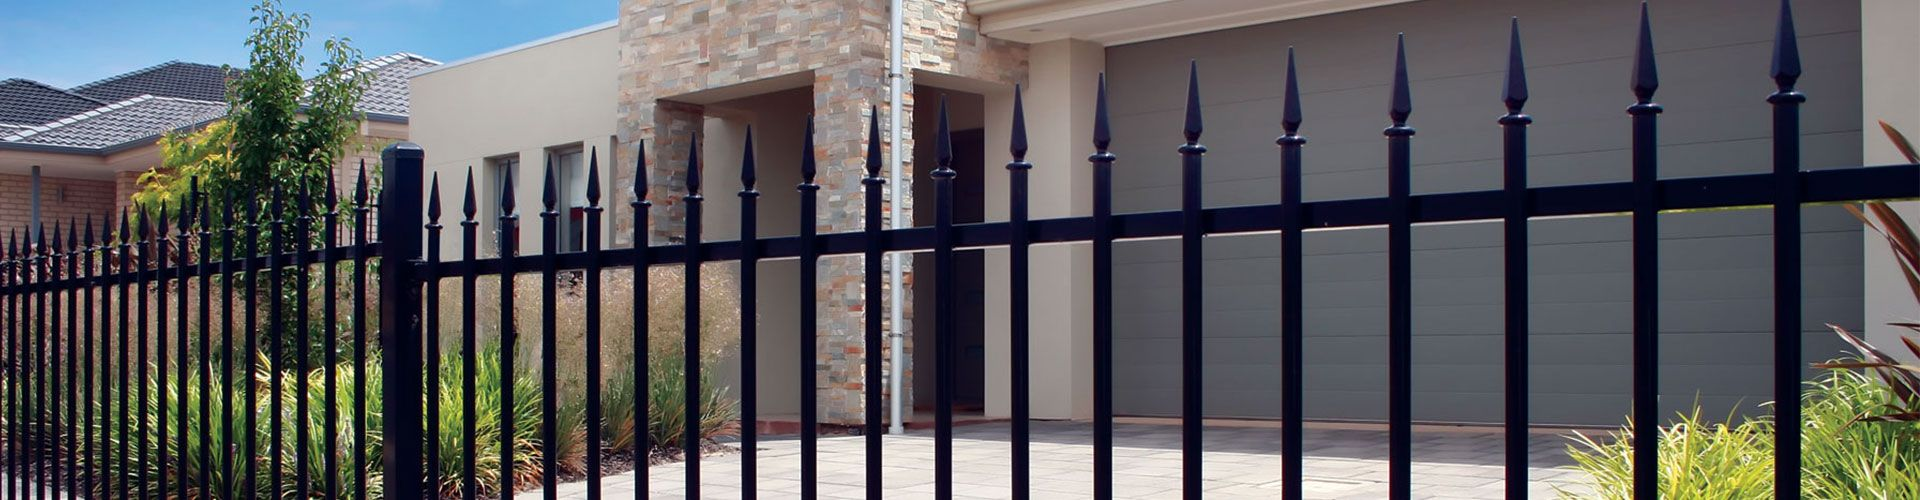 The Fencing Factory | Your one stop shop for all your fencing needs